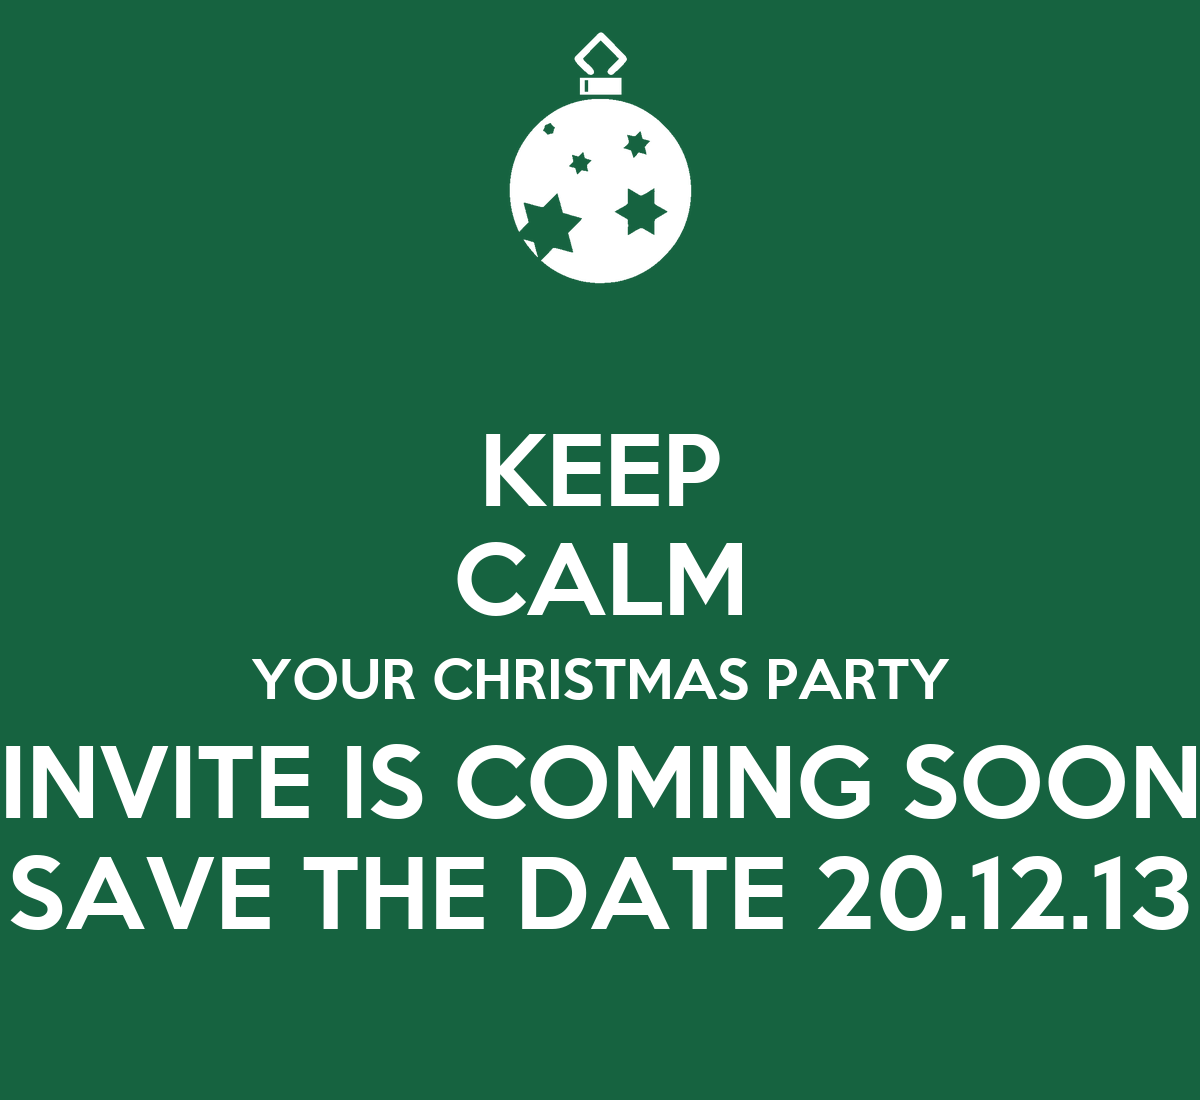 KEEP CALM YOUR CHRISTMAS PARTY INVITE IS COMING SOON SAVE